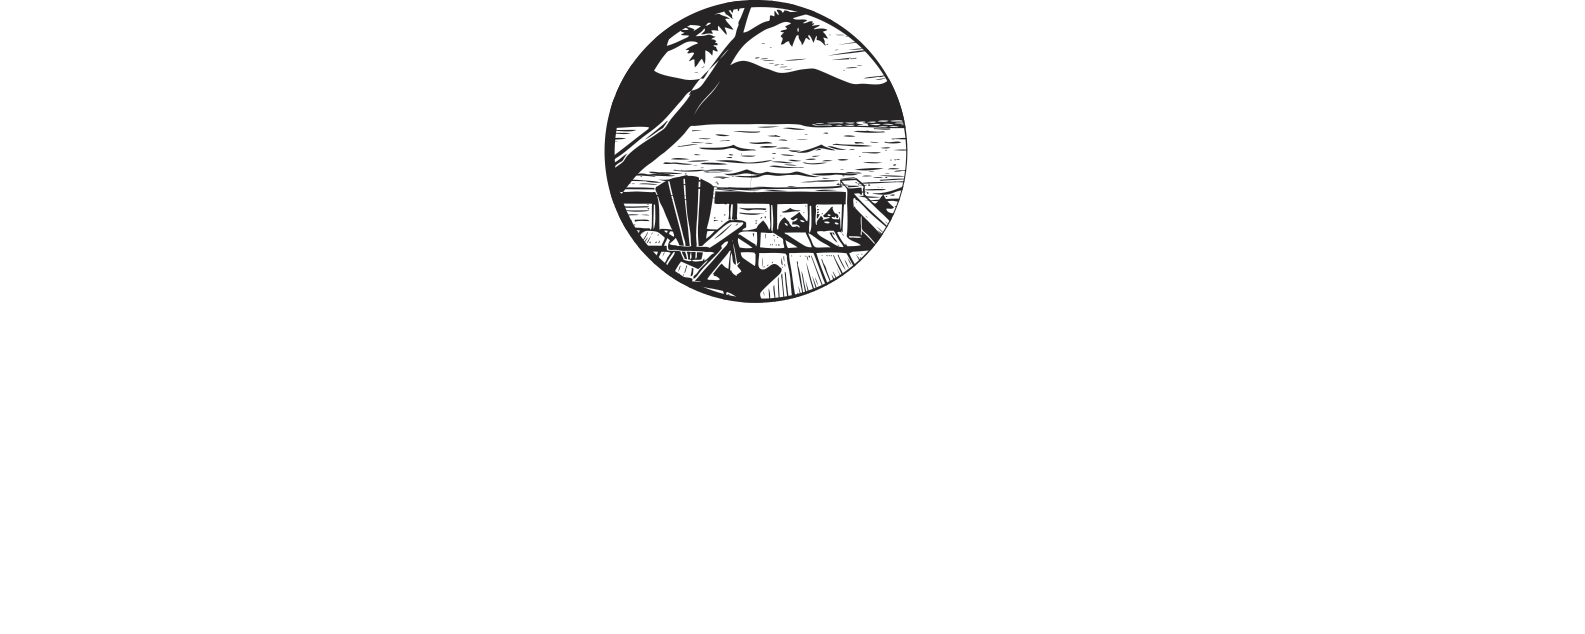 WCC-waters-Edge-logo-B-white-2